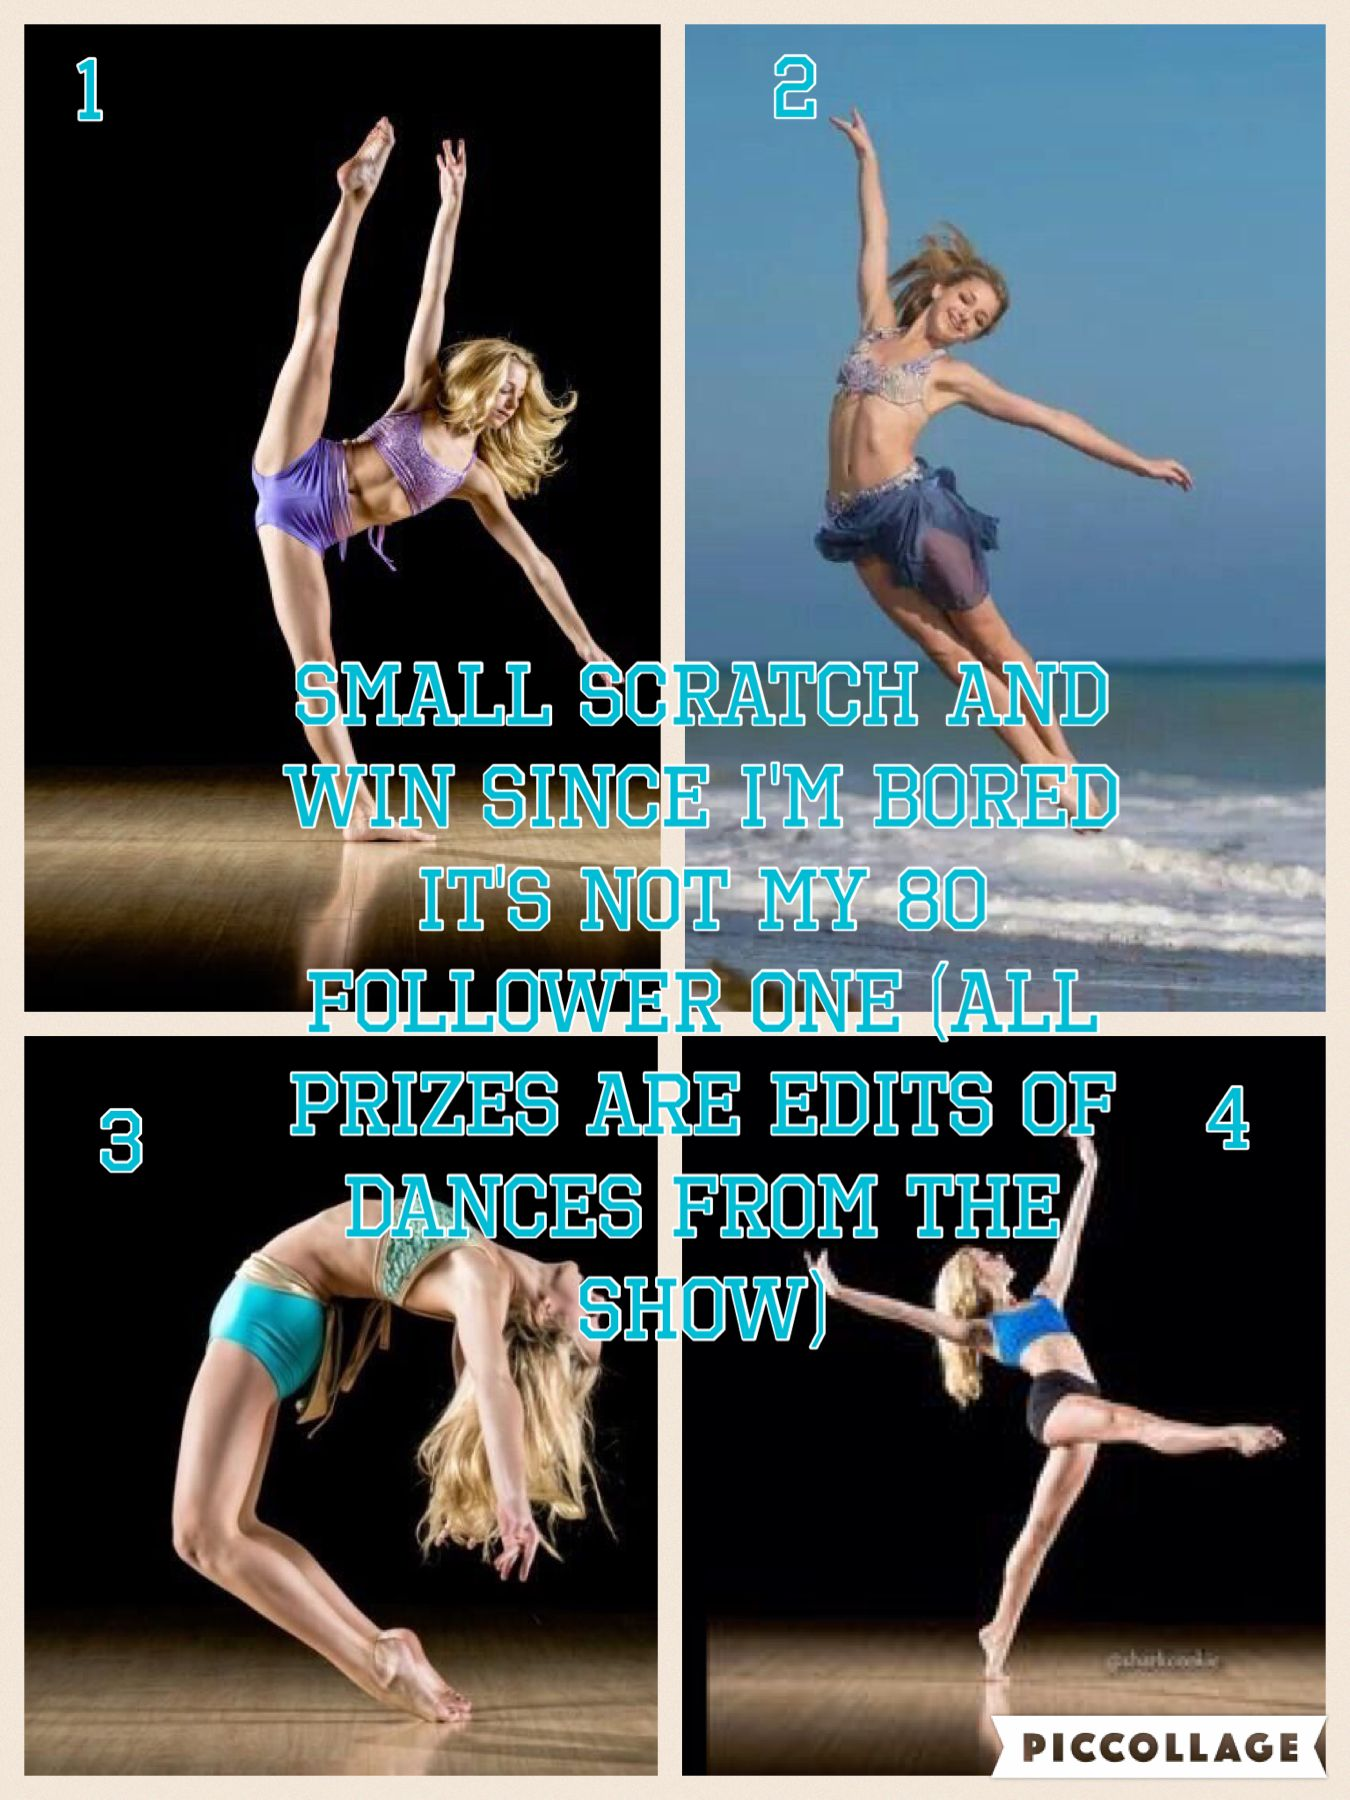 Spoiling it sort of  You can win An edit of a Trio Duo Solo  Group  From the show